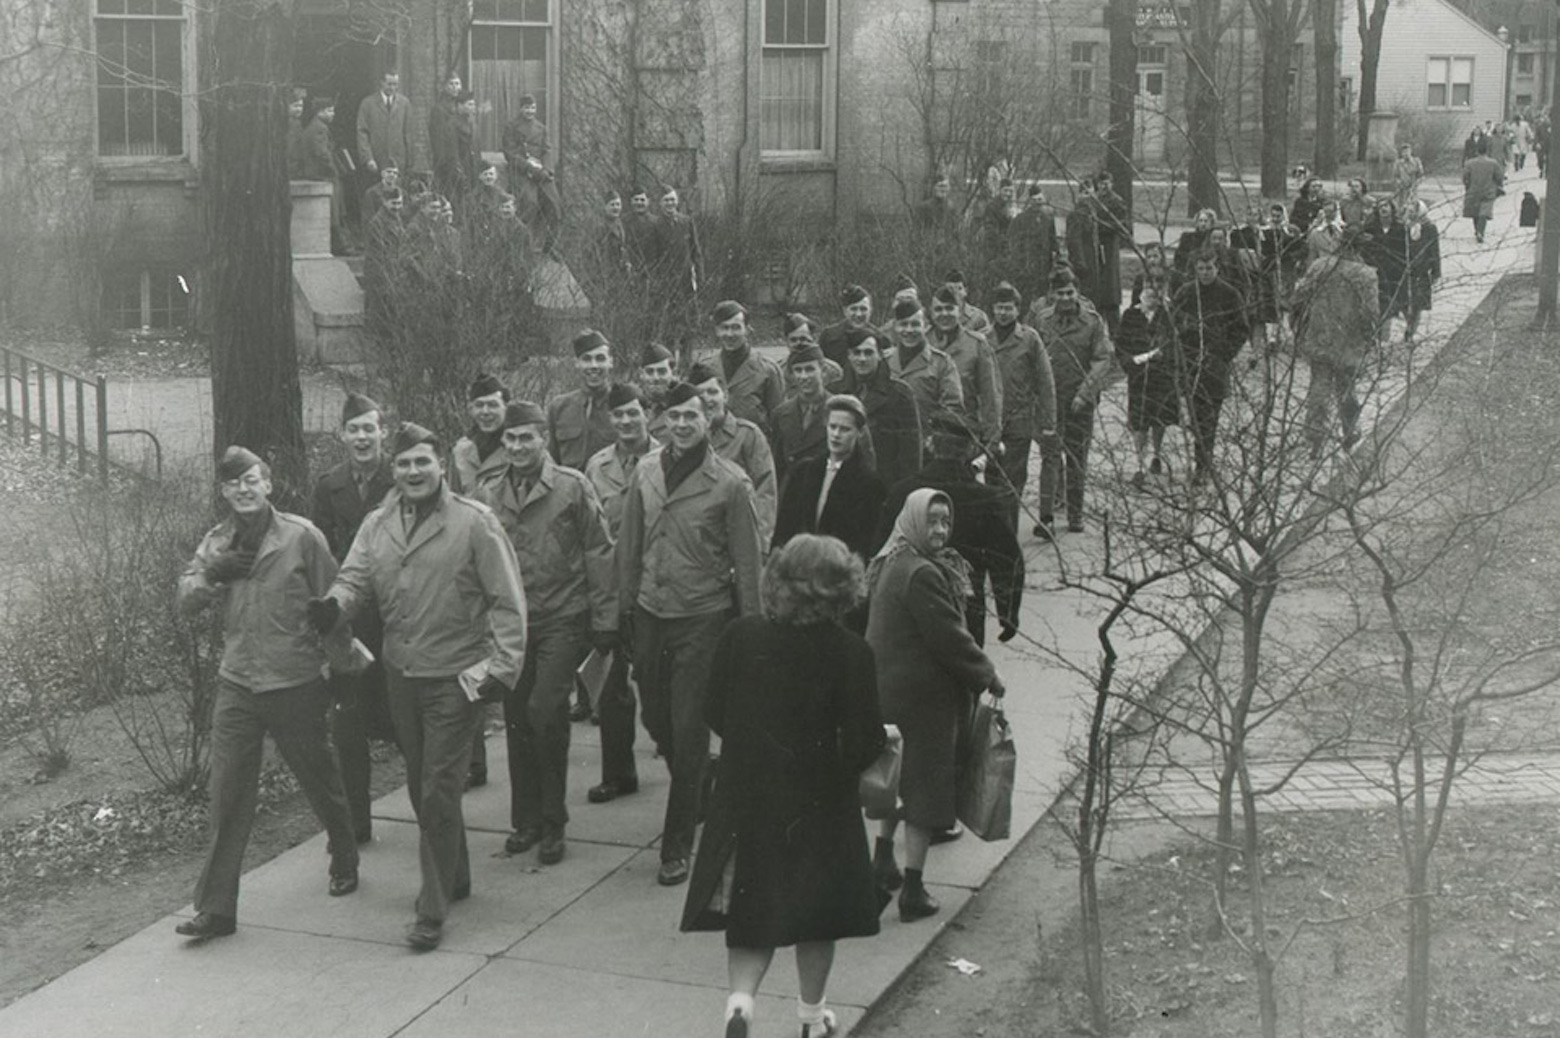 Soldiers walking through the Michigan - Ann Arbor campus